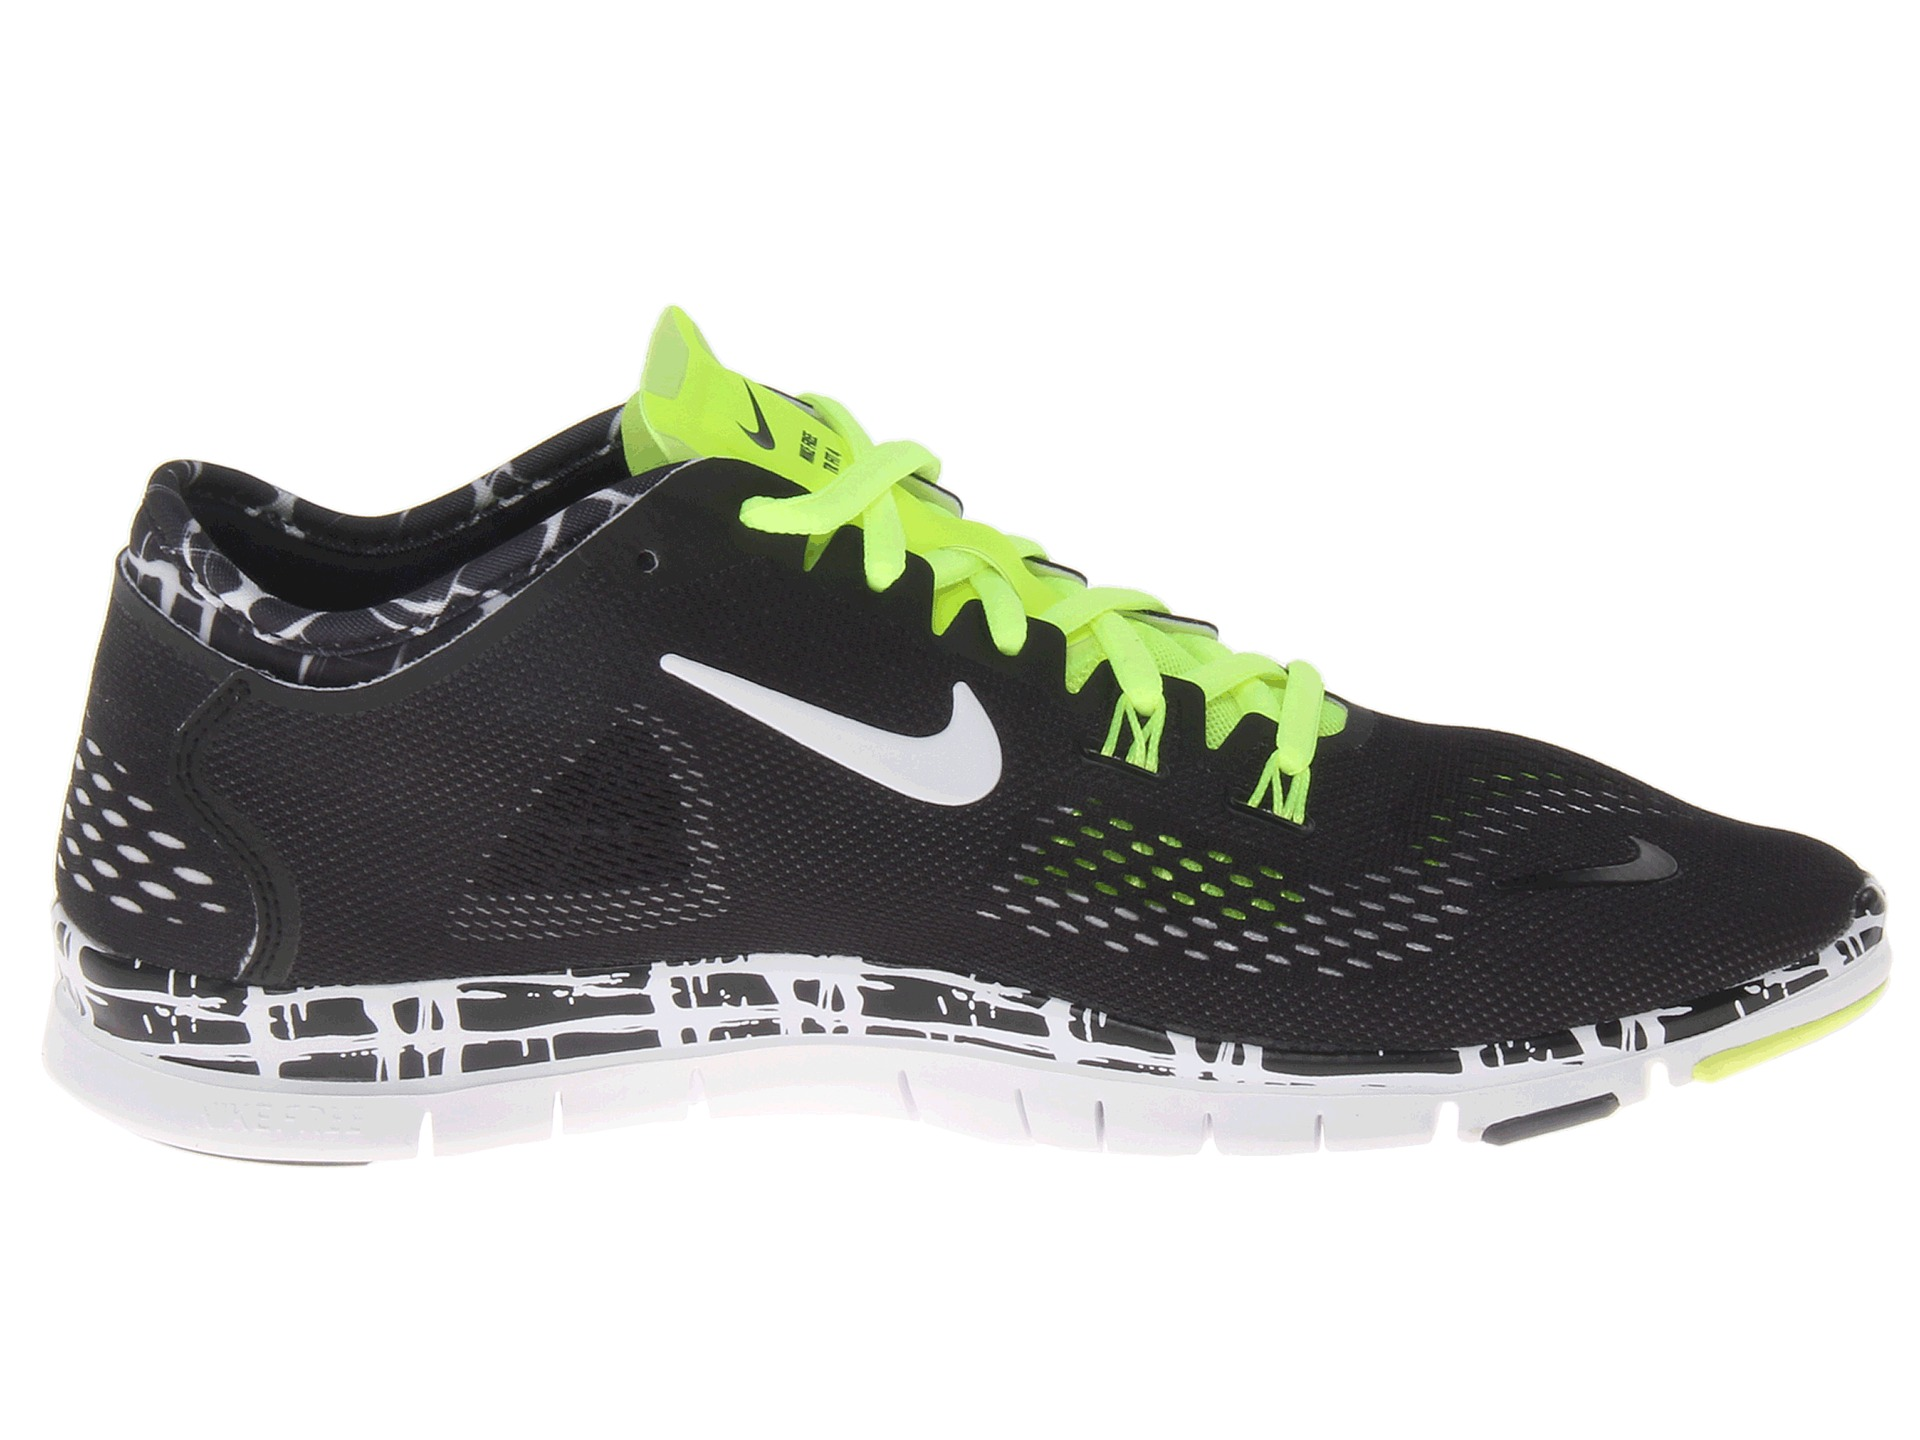 low priced 12f8c ddb41 top quality nike free running shoes eastbay e0806 41d98